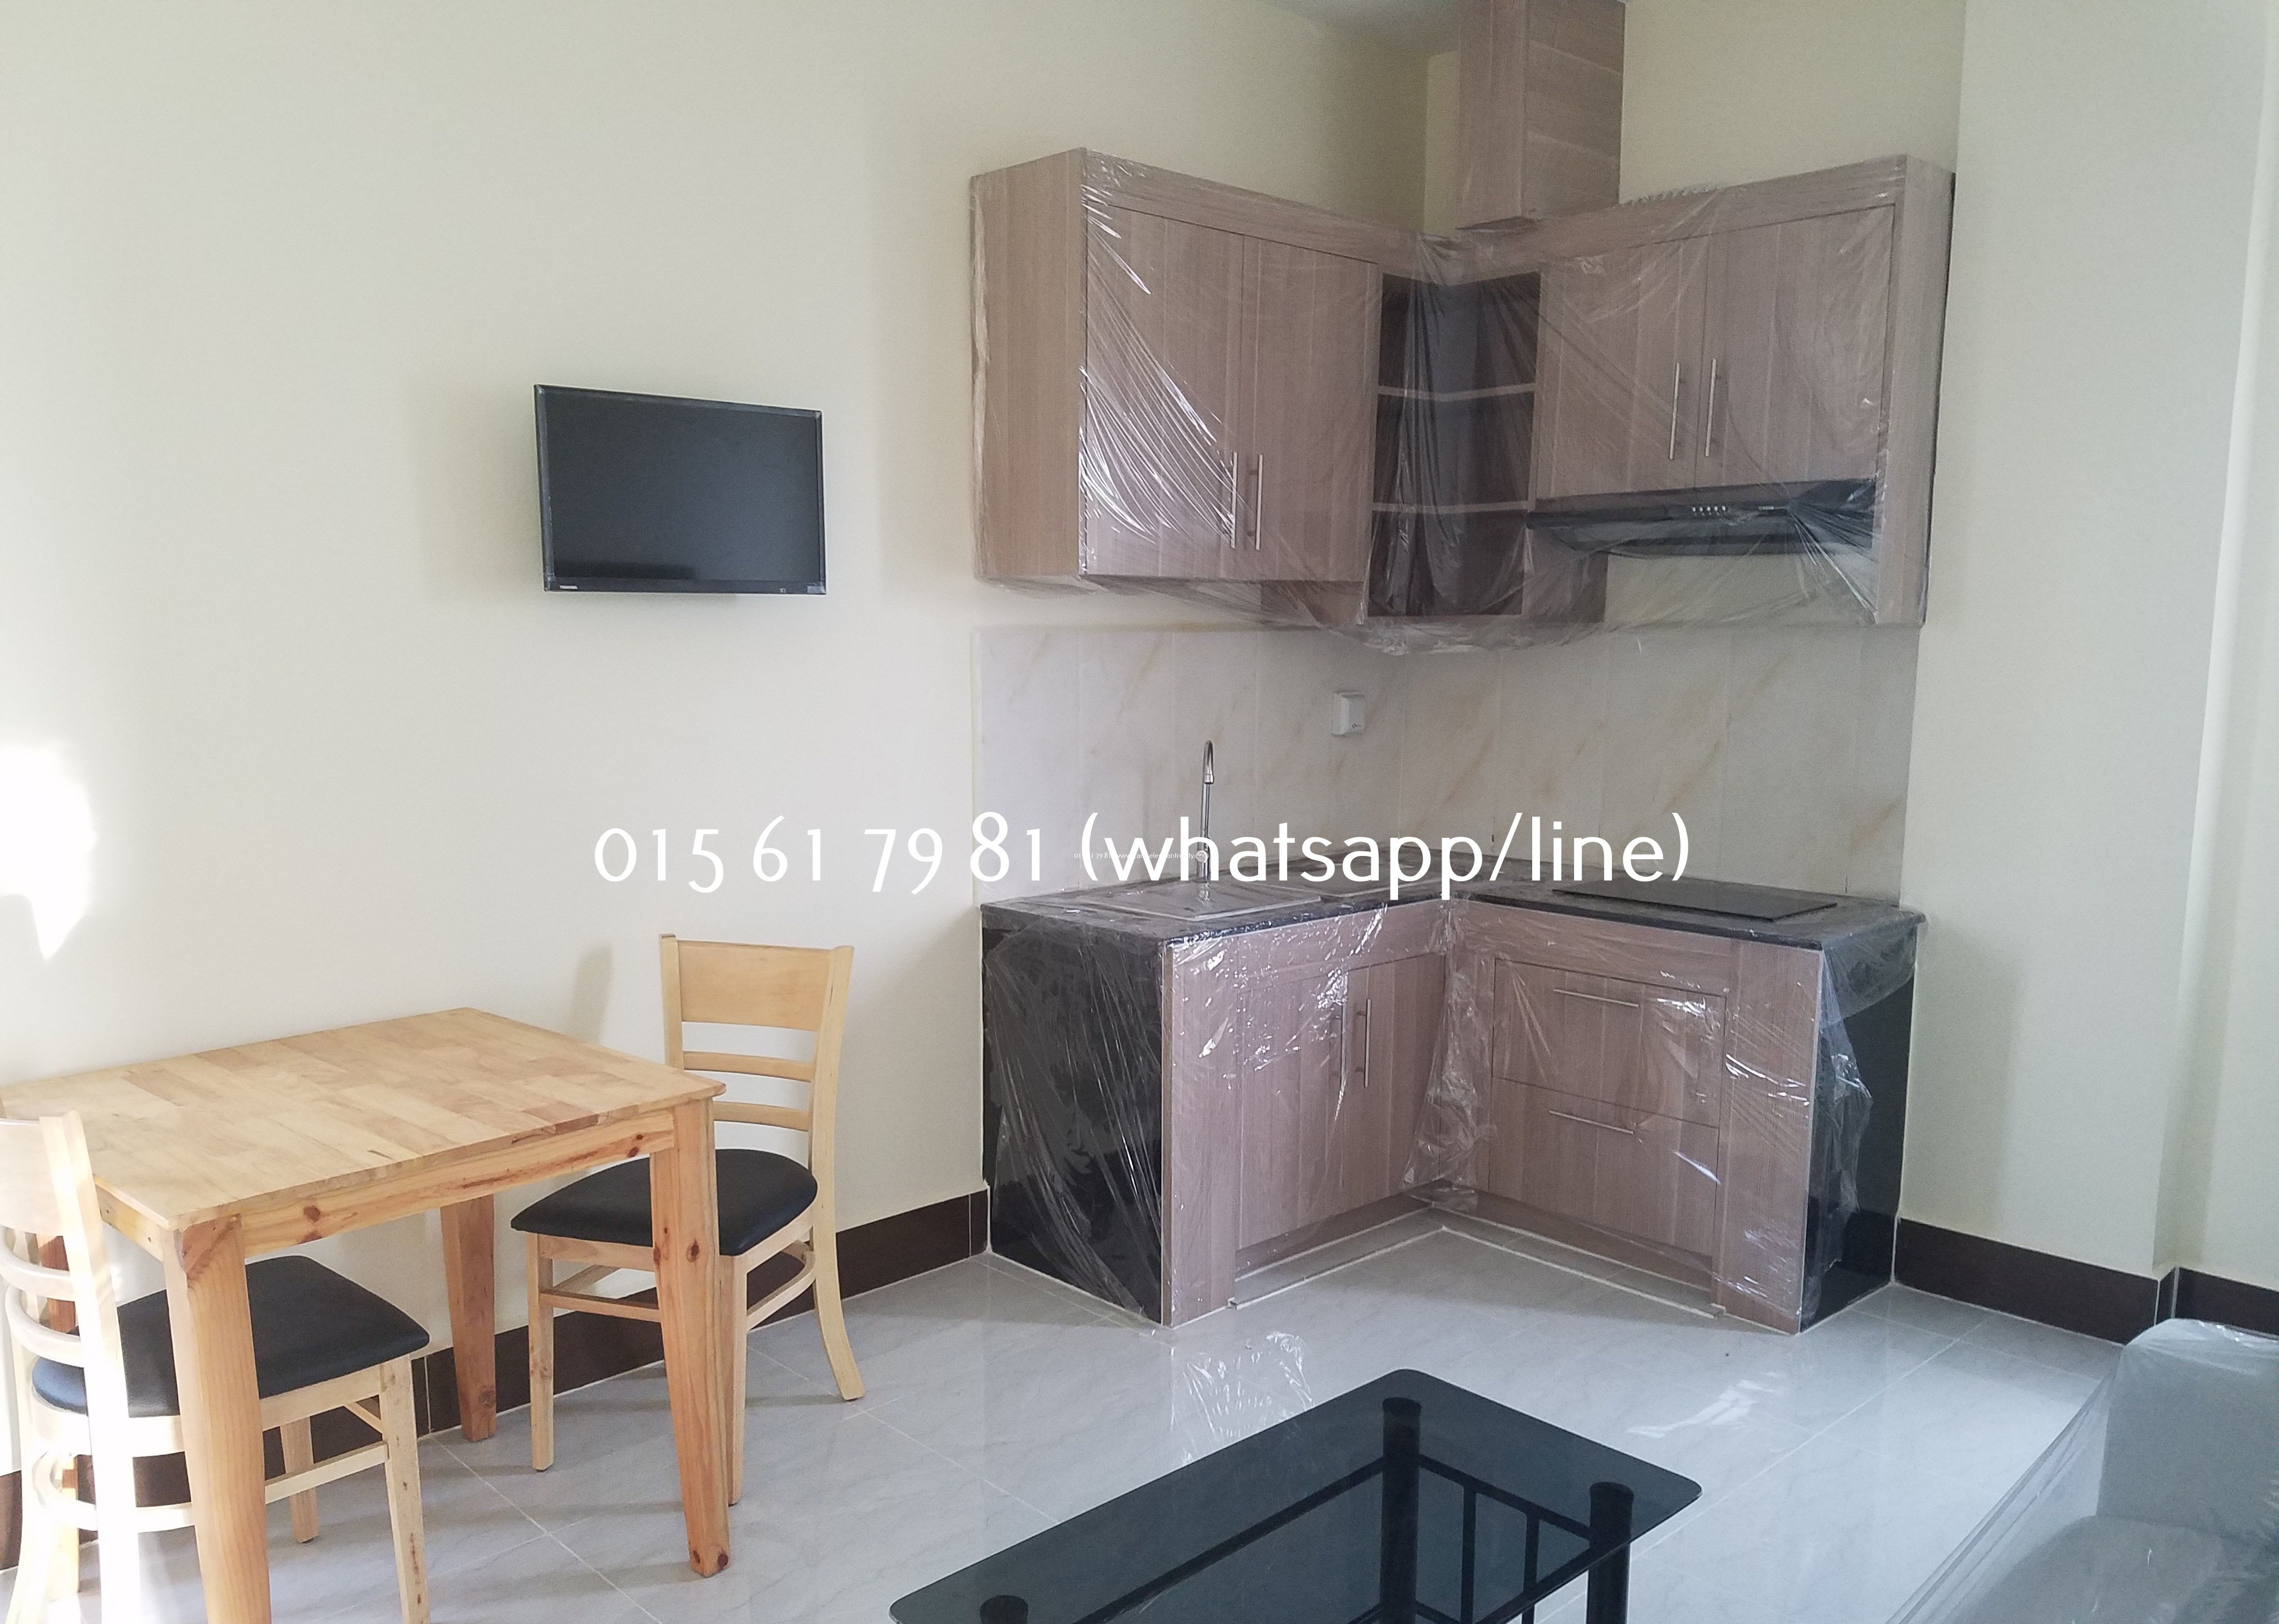 New Western Apartment 1bedroom $450/month Russian Market